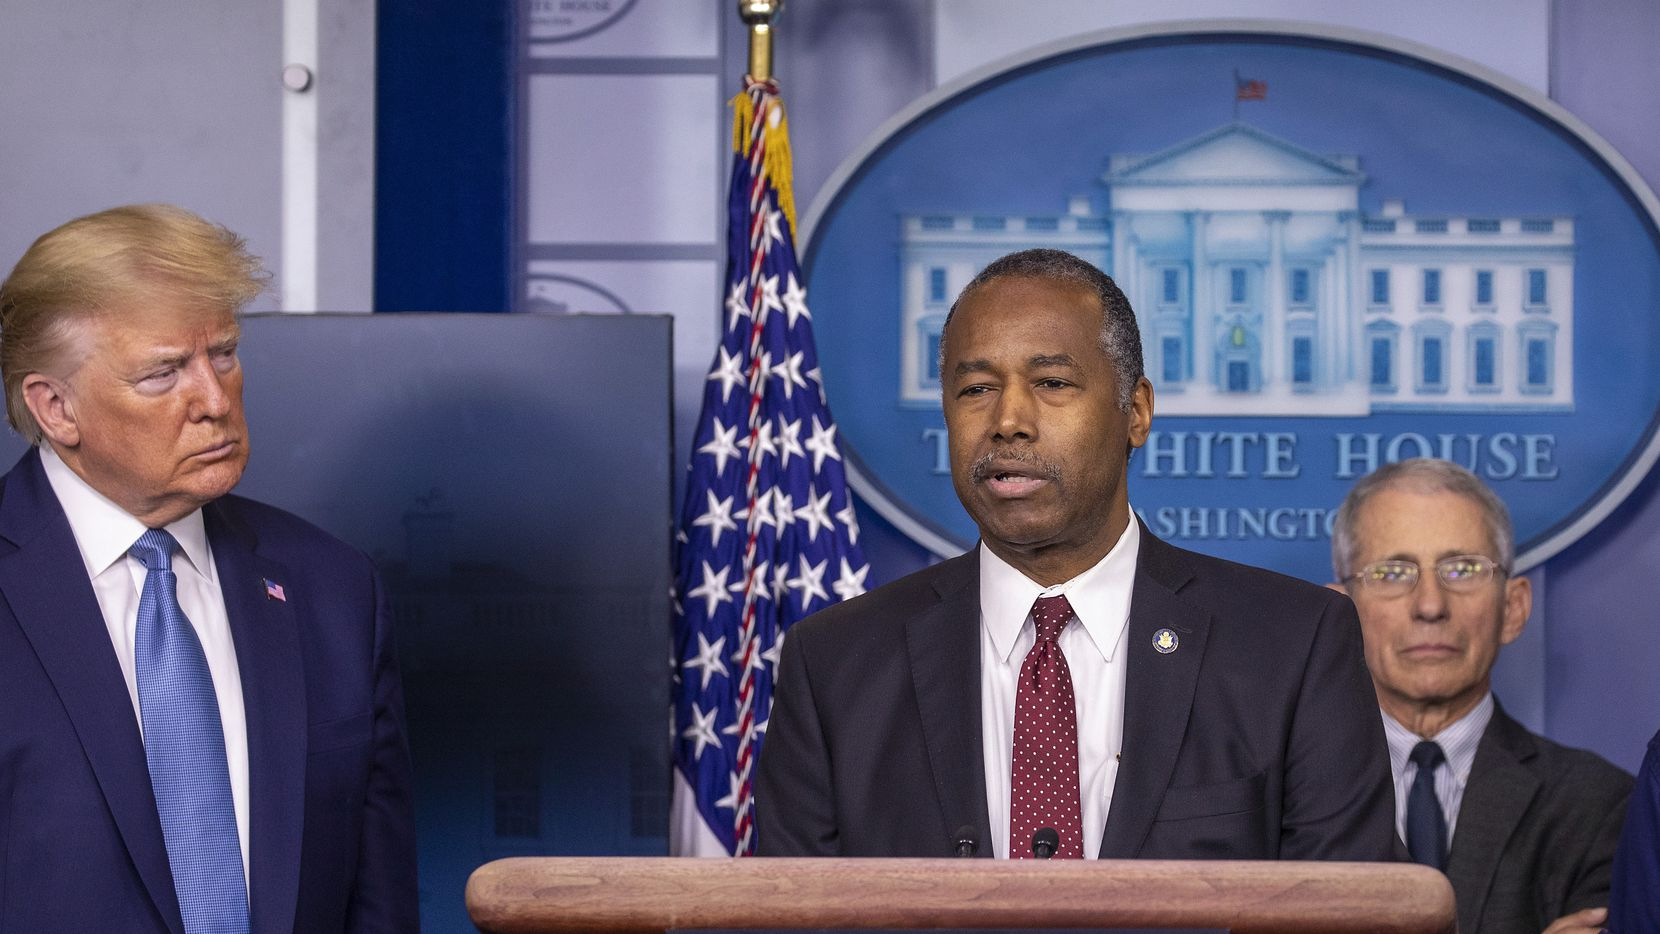 Ben Carson, a member of Donald Trump's Cabinet and coronavirus task force, prompted testing of  the herbal extract oleandrin as a treatment for COVID-19 on seniors in Texas.